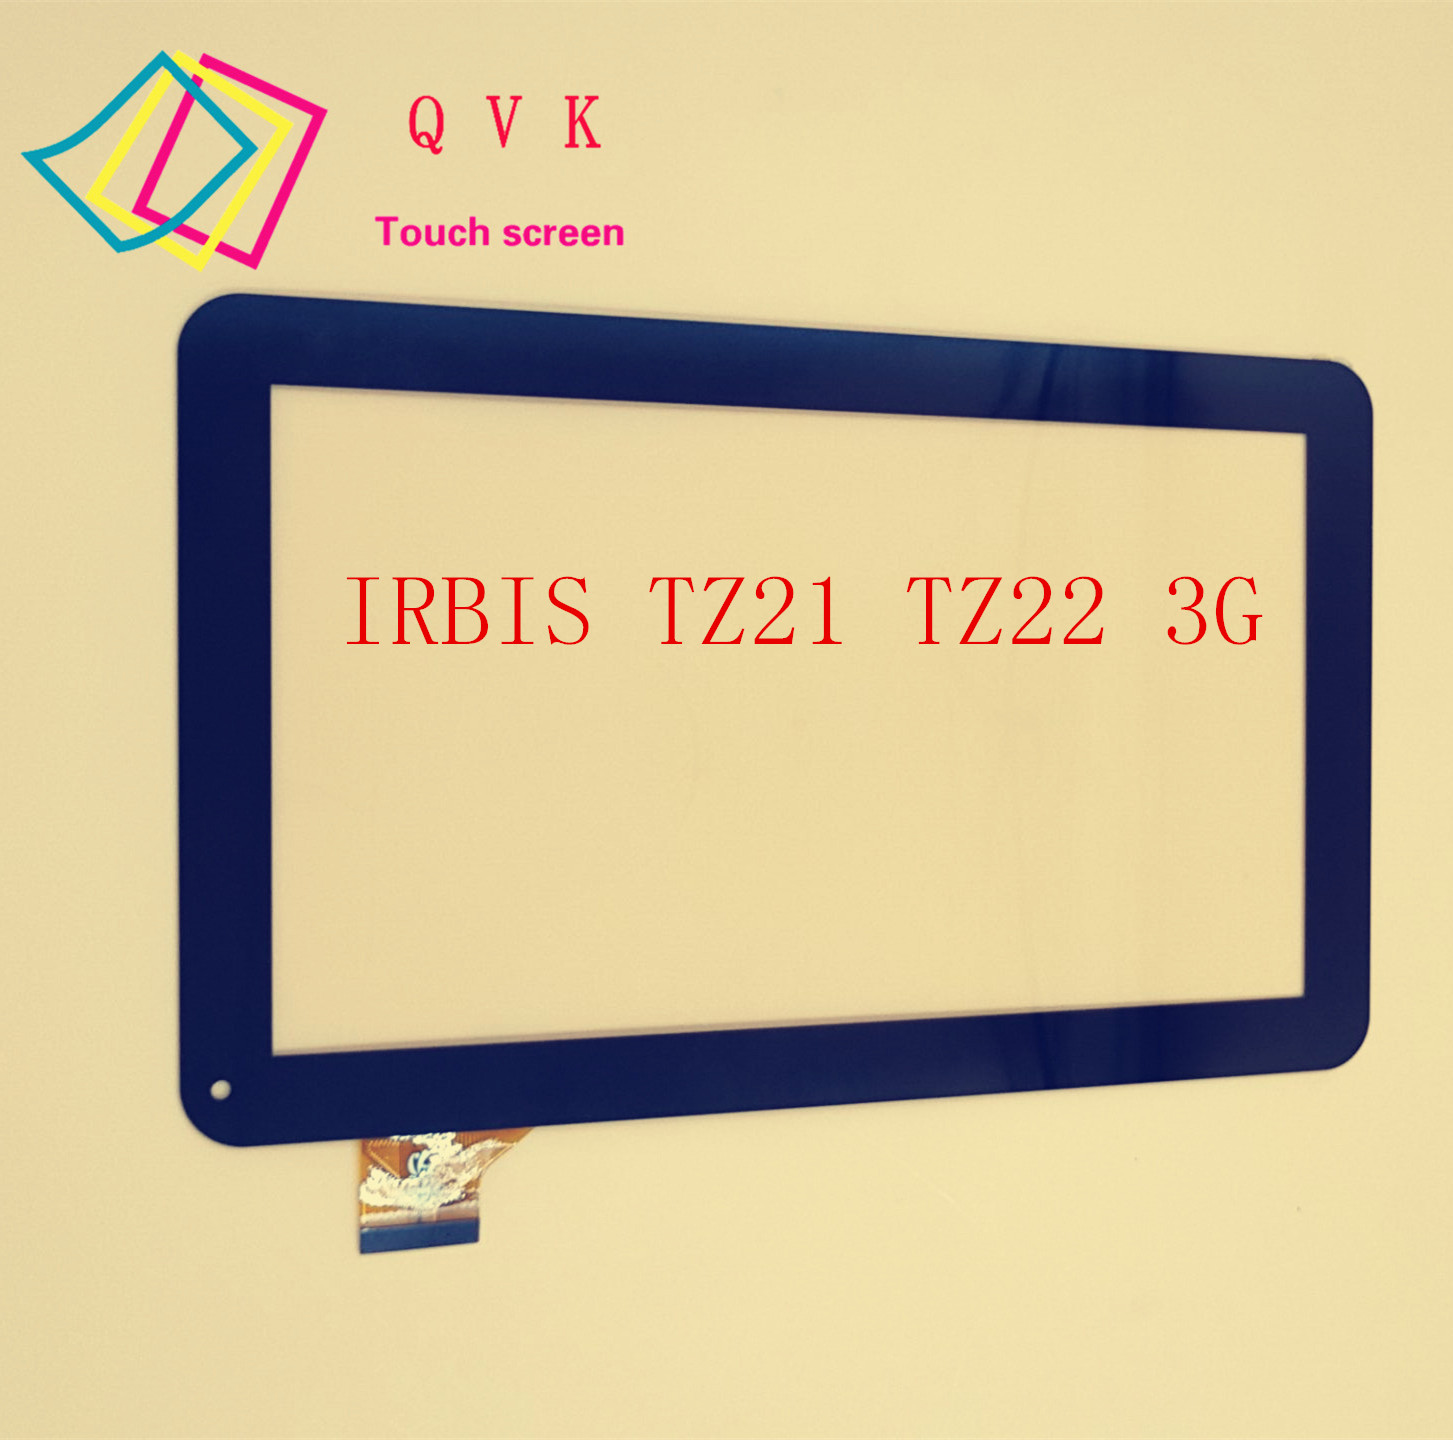 Black For IRBIS TZ21 TZ22 3G 10.1inch tablet pc capacitive touch screen panel digitizer glass 10 1 inch for irbis tx58 tx59 tablet pc external capacitive touch screen capacitance panel